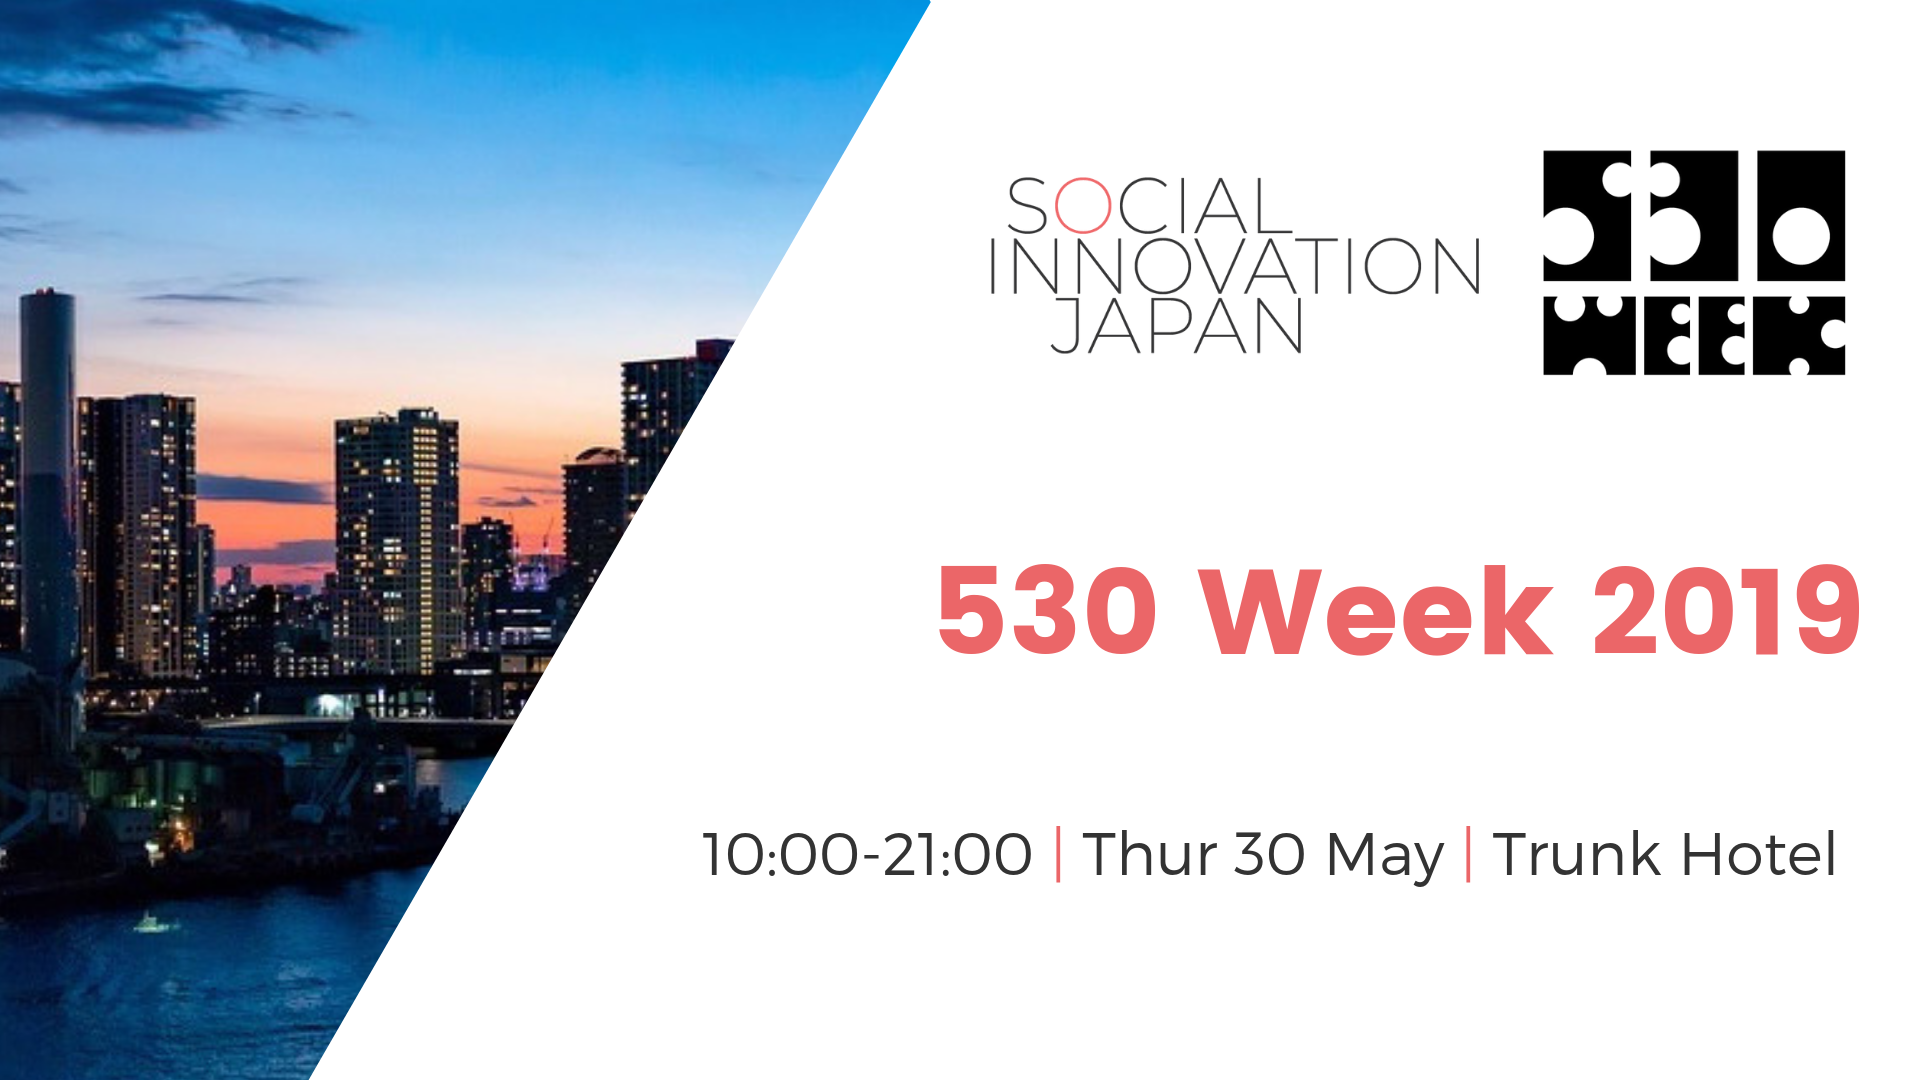 Partnership with 530 Week — Social Innovation Japan